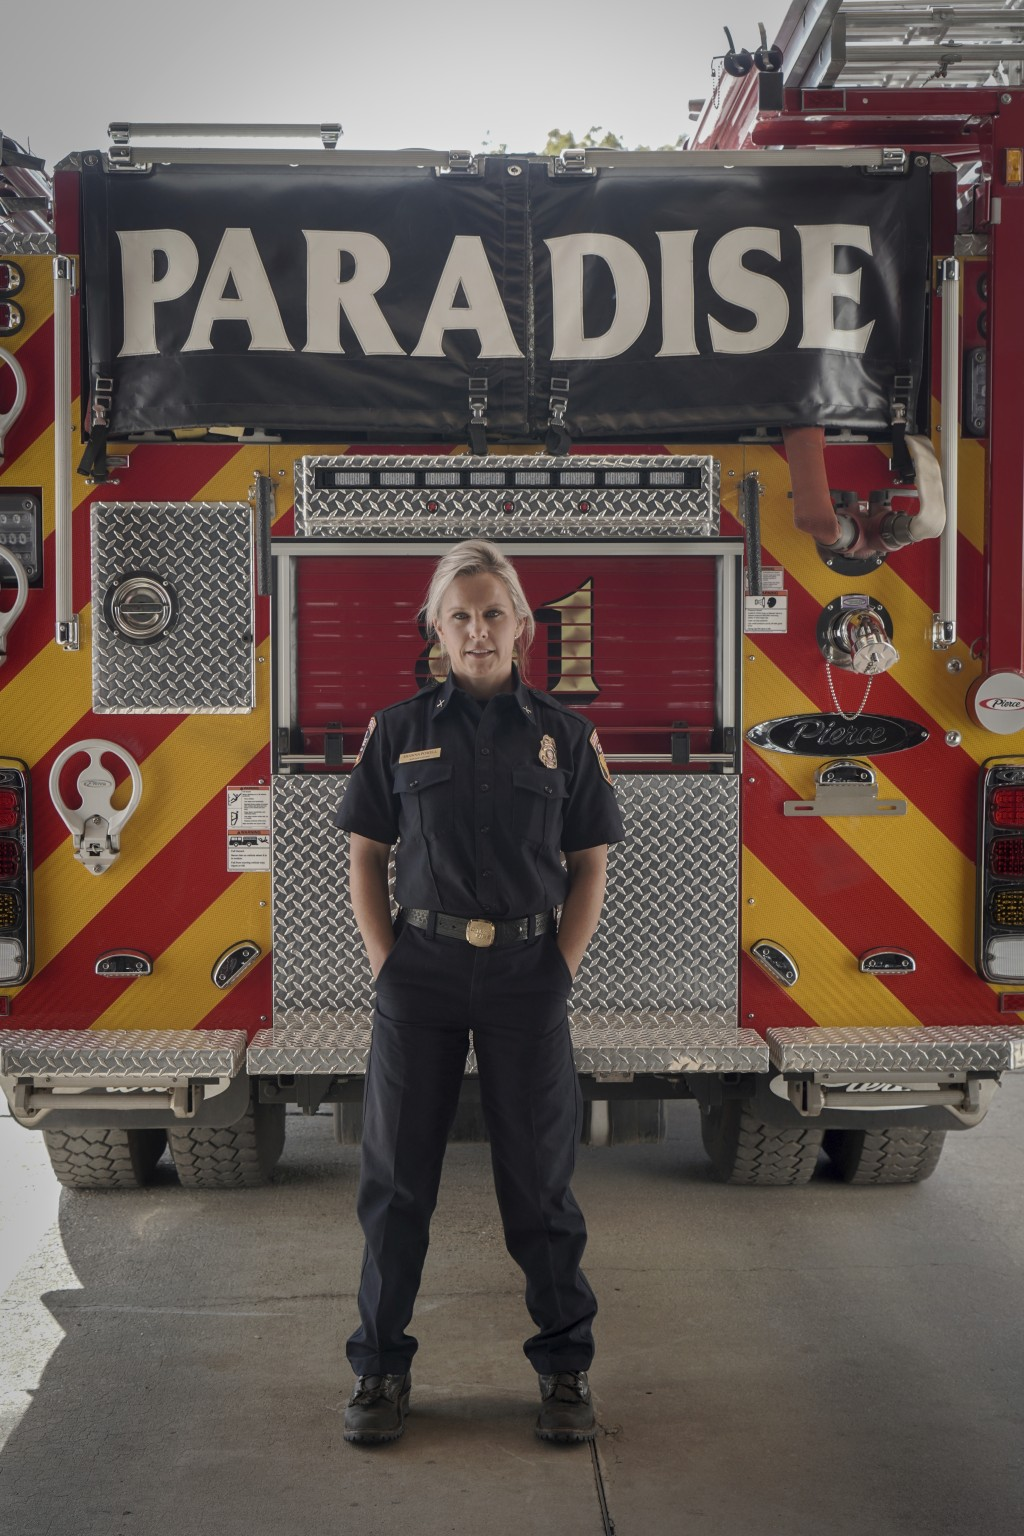 This image released by National Geographic shows firefighter Shawna Powell posing in front of a Paradise Fire Department fire truck in Paradise, Calif...